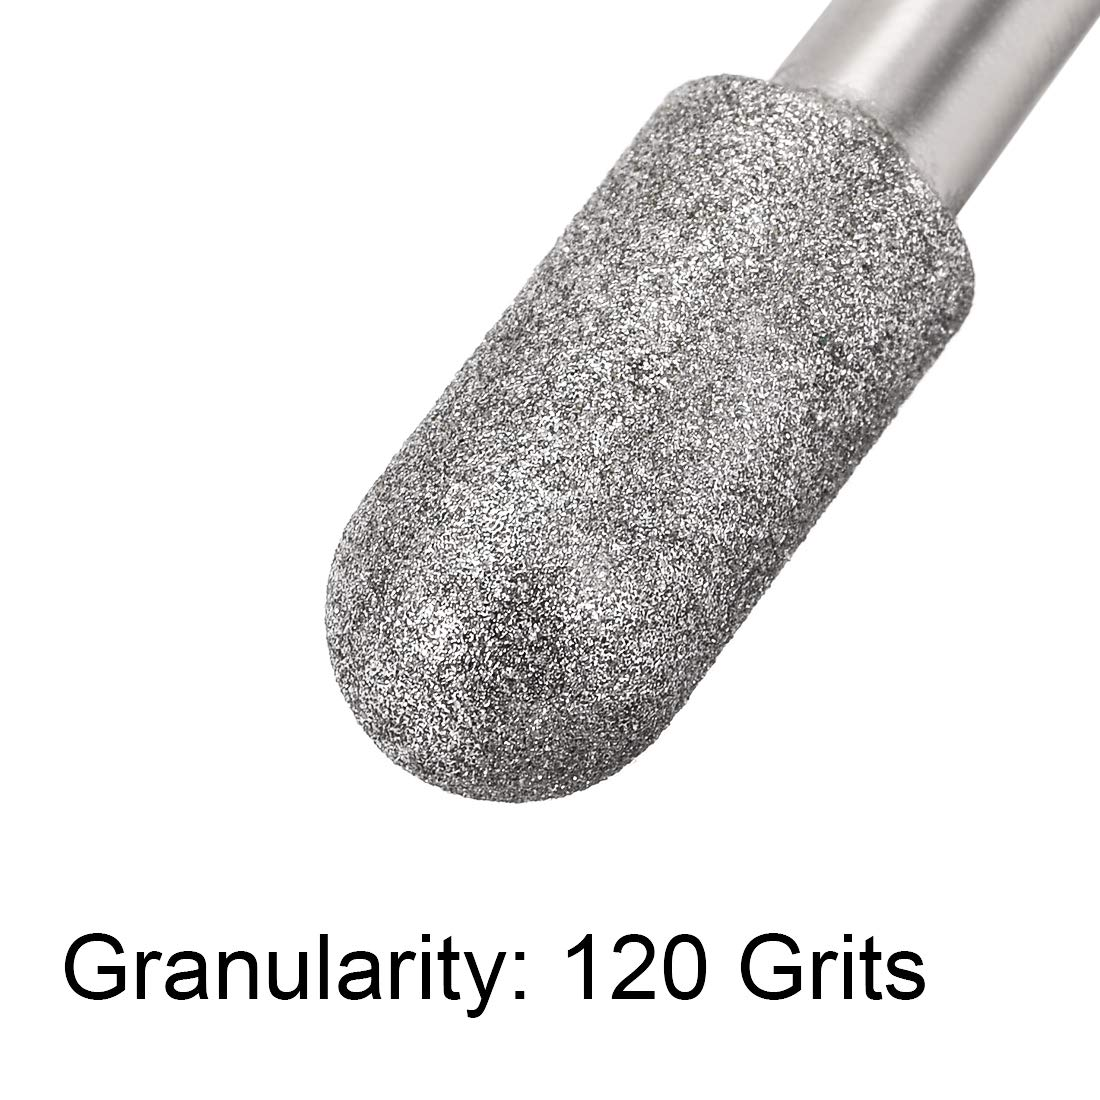 uxcell Diamond Burrs Grinding Drill Bits for Carving Rotary Tool 1//4-Inch Shank 10mm Cylindrical Ball Nose 120 Grit 10 Pcs